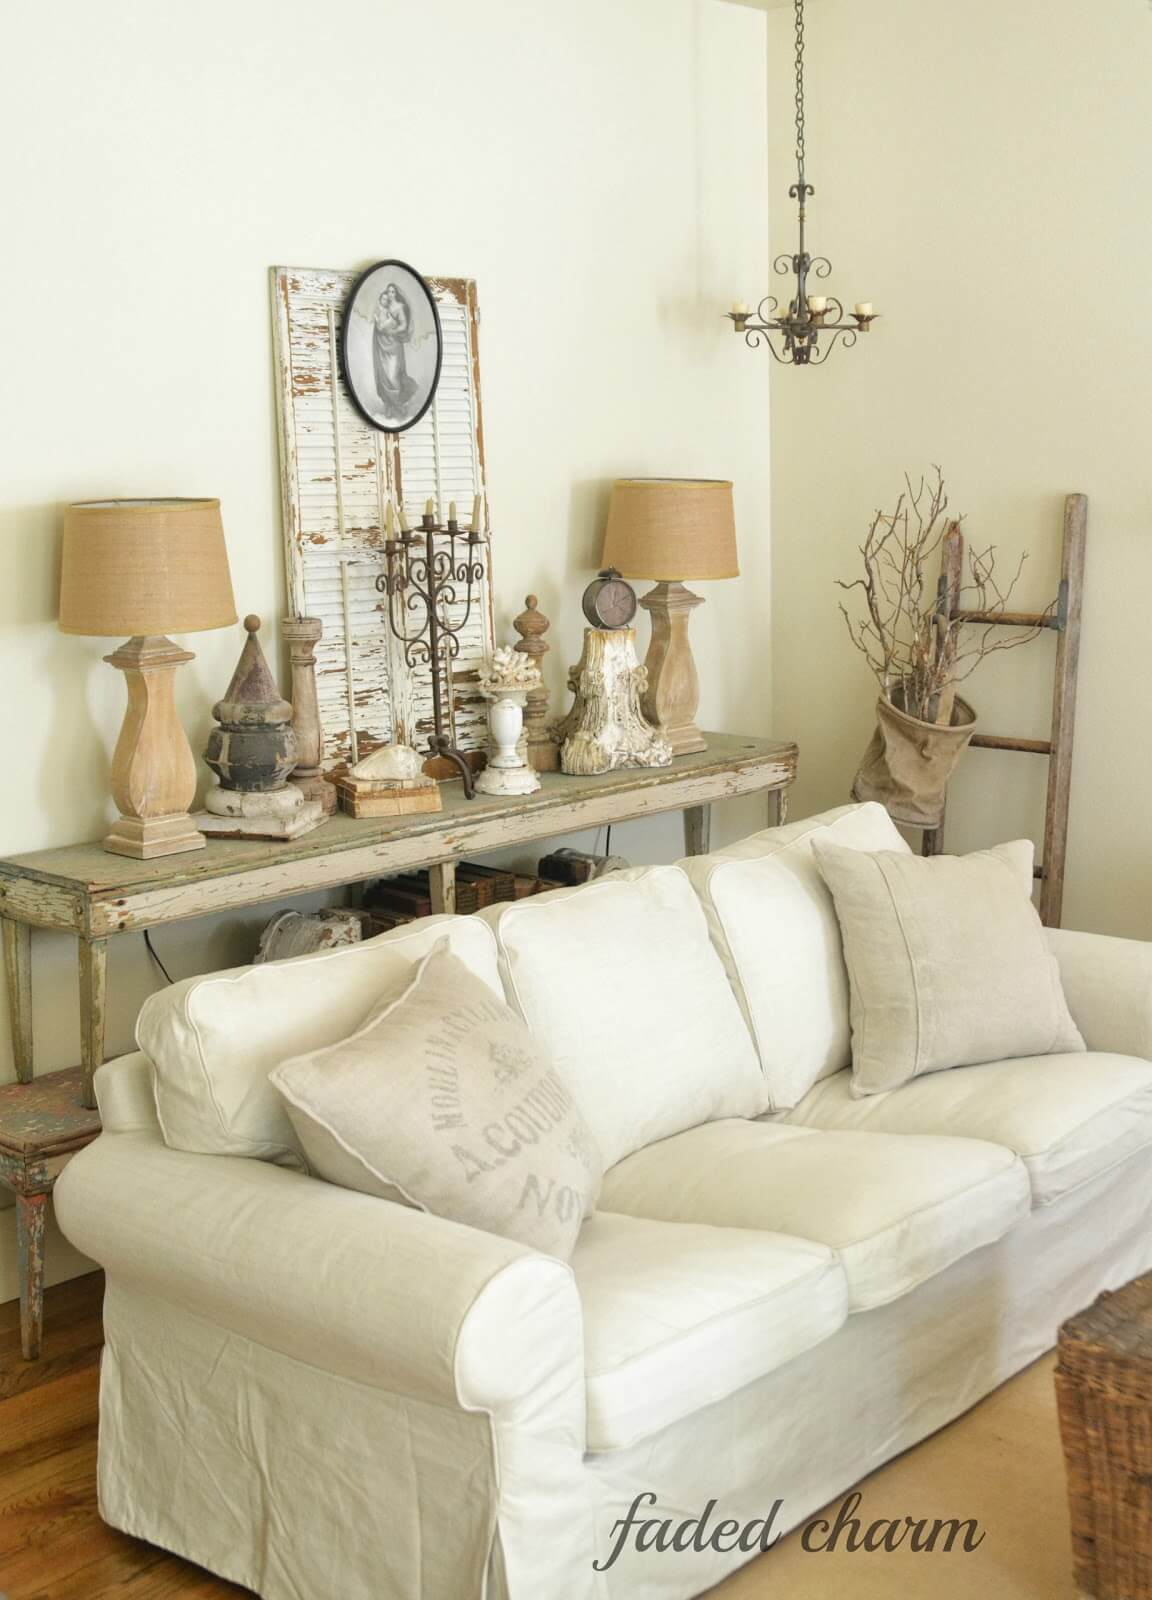 Farmhouse Chic Living Room Decor: 21 Best Rustic Living Room Furniture Ideas And Designs For